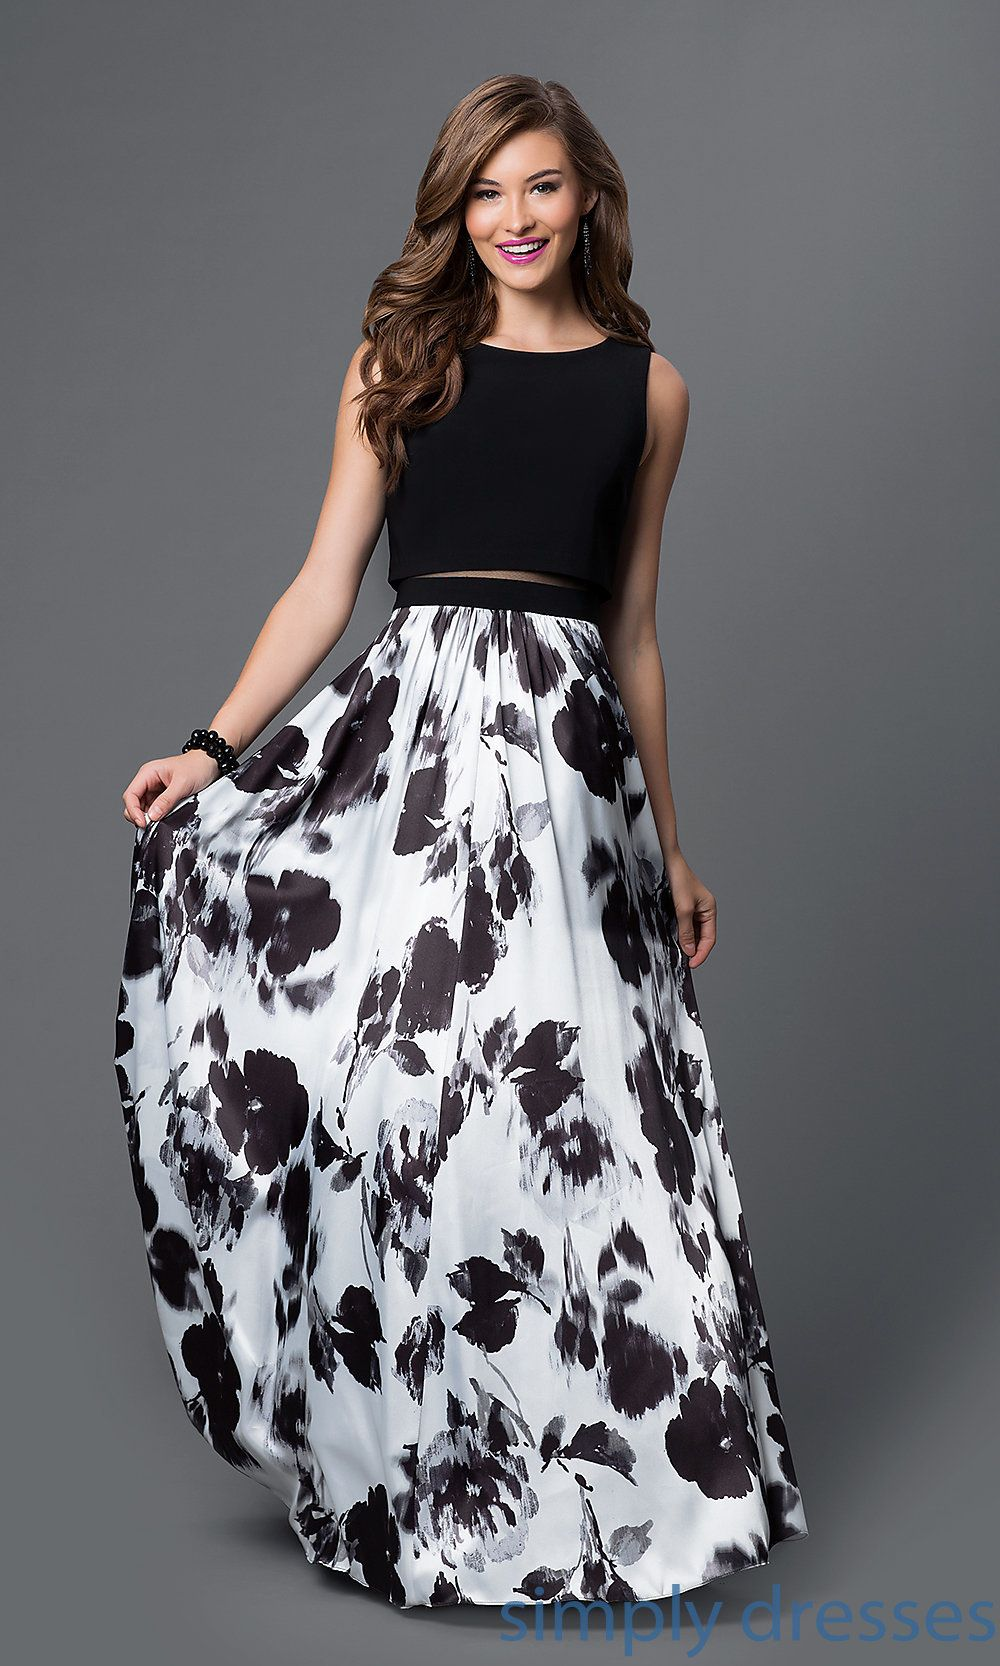 45f43942d88 Shop long floral-print evening gowns and black and white dresses at Simply  Dresses. Mock two-piece prom dresses with sheer mesh midriffs for formals.